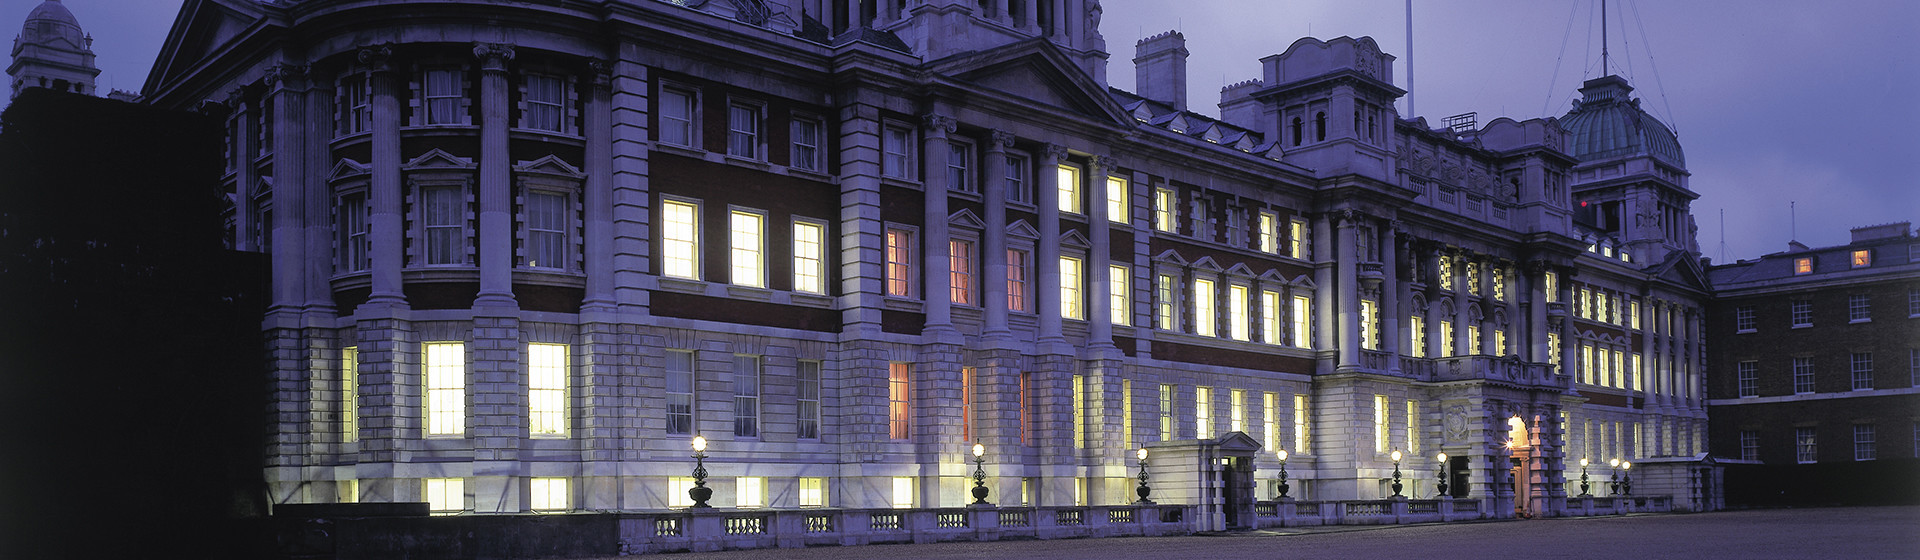 Image for Foreign & Commonwealth Office Exterior